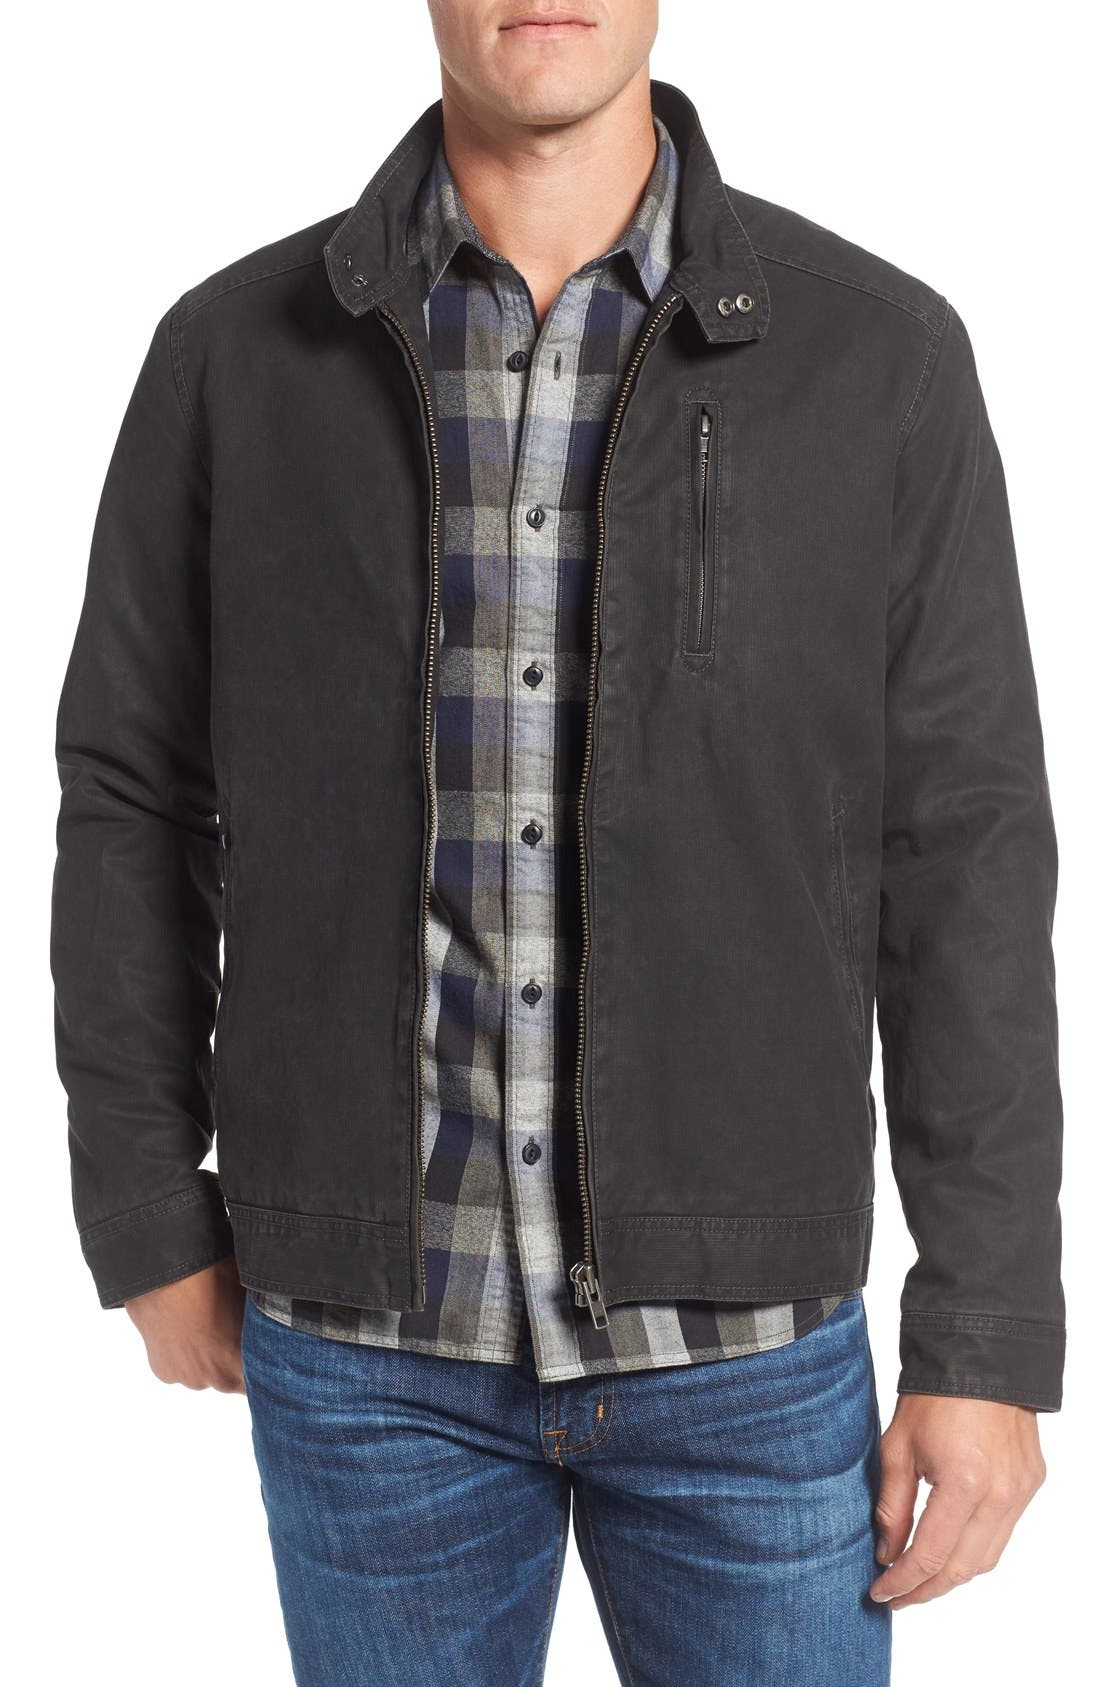 Rodd & Gunn Jack Reacher Jacket